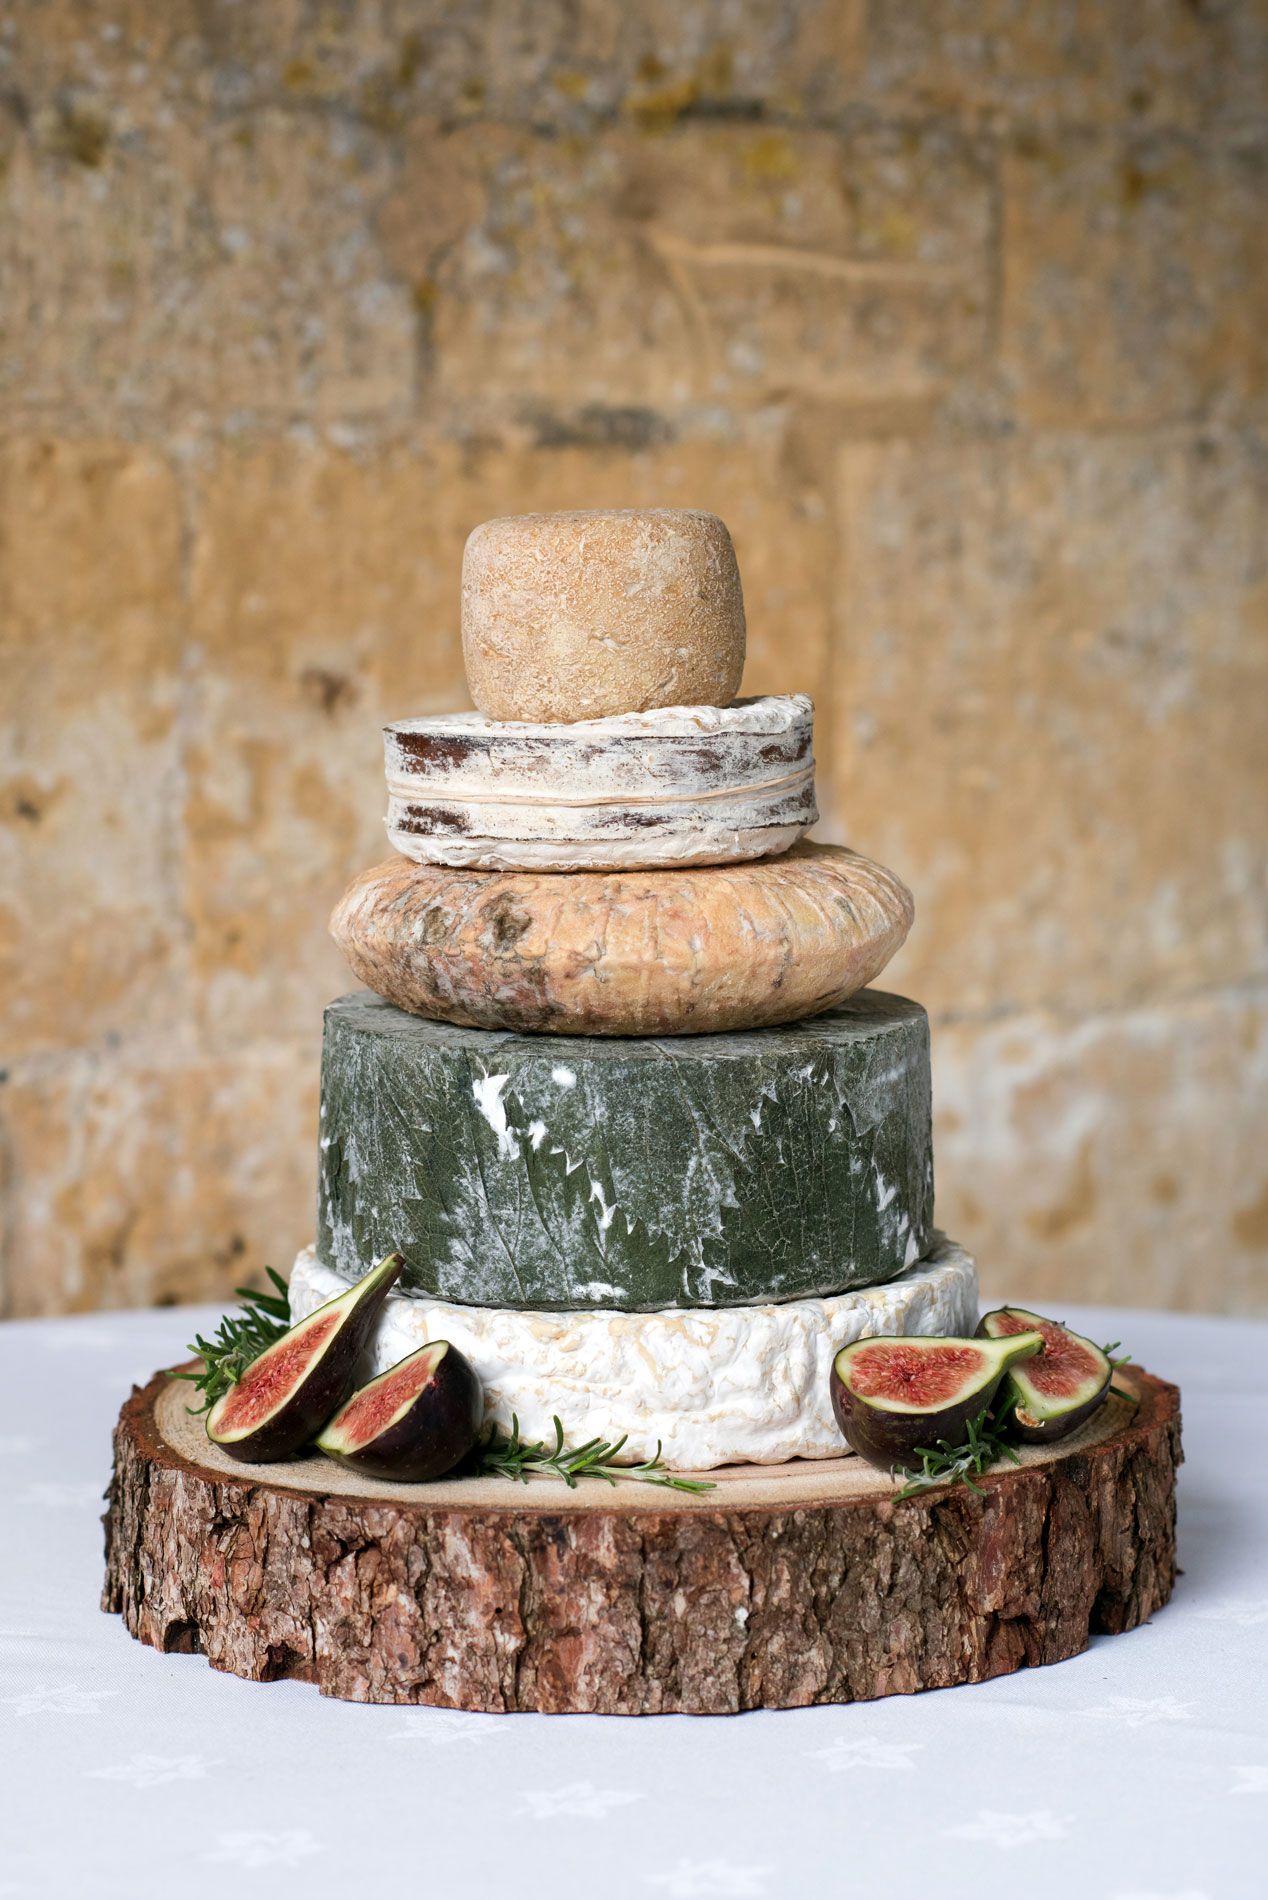 Cotswold-Cheese-Nov-2018-30.jpg